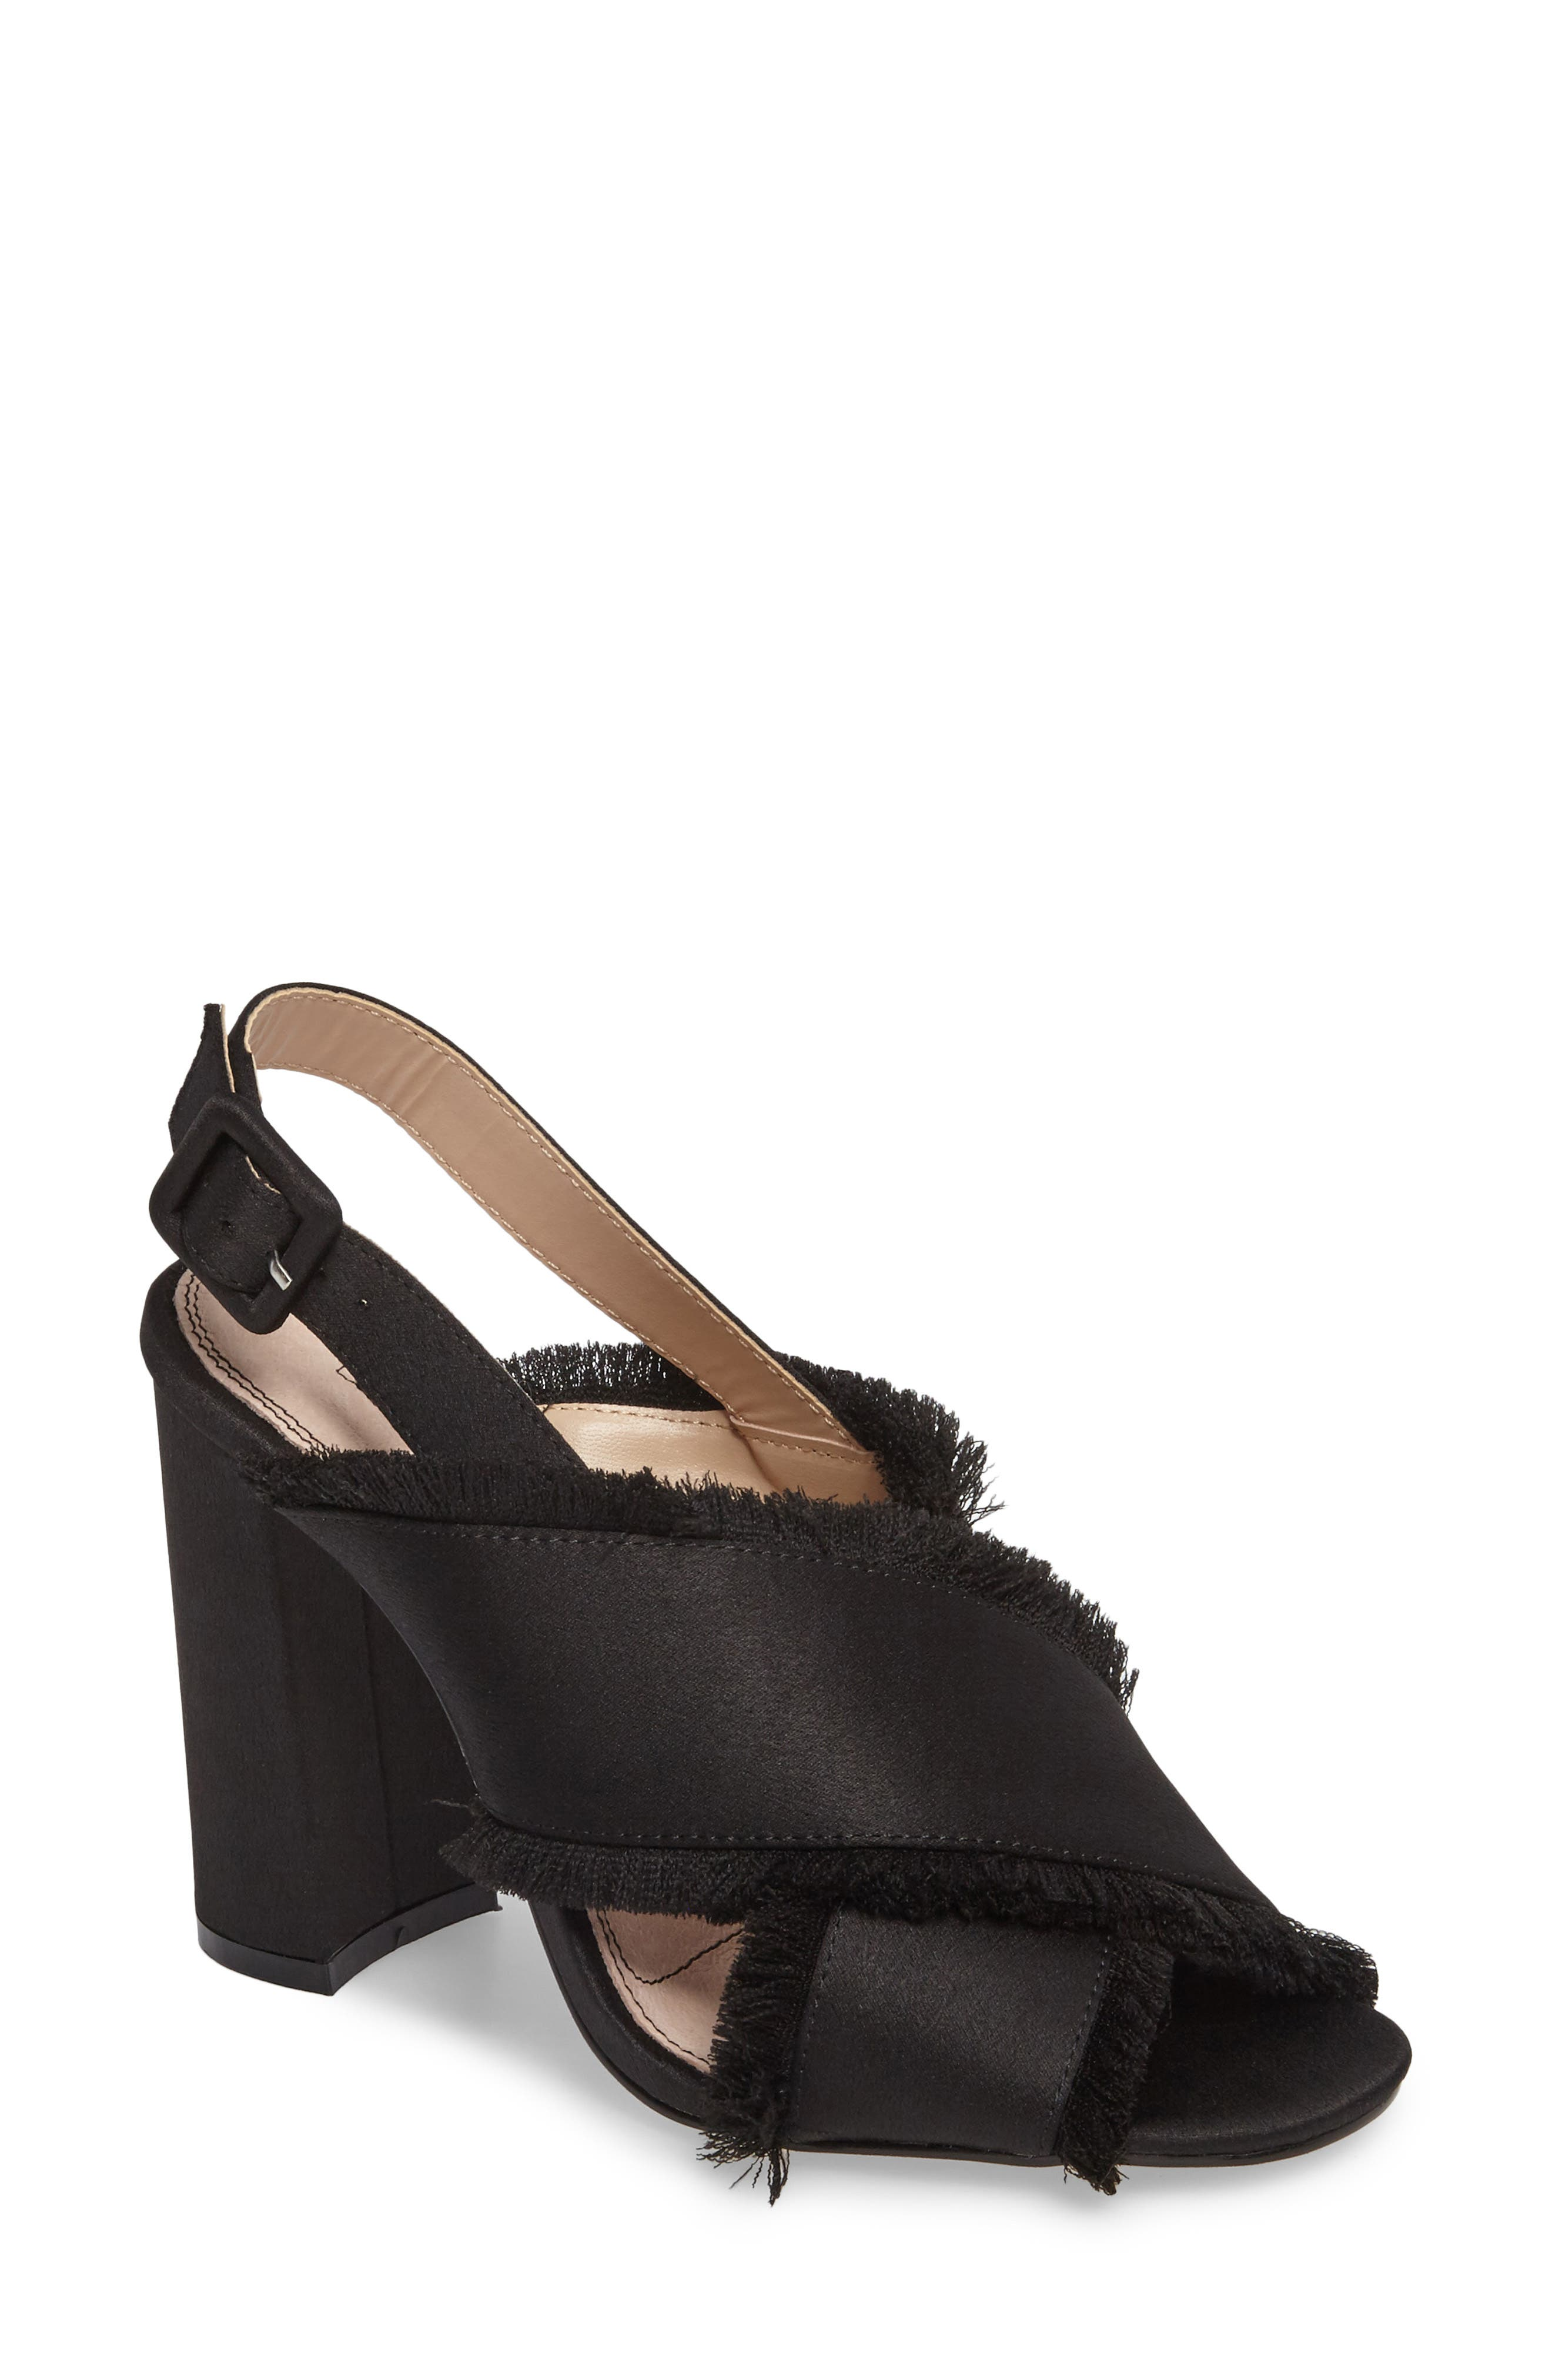 Alternate Image 1 Selected - Topshop Reef Fringe Sandal (Women)